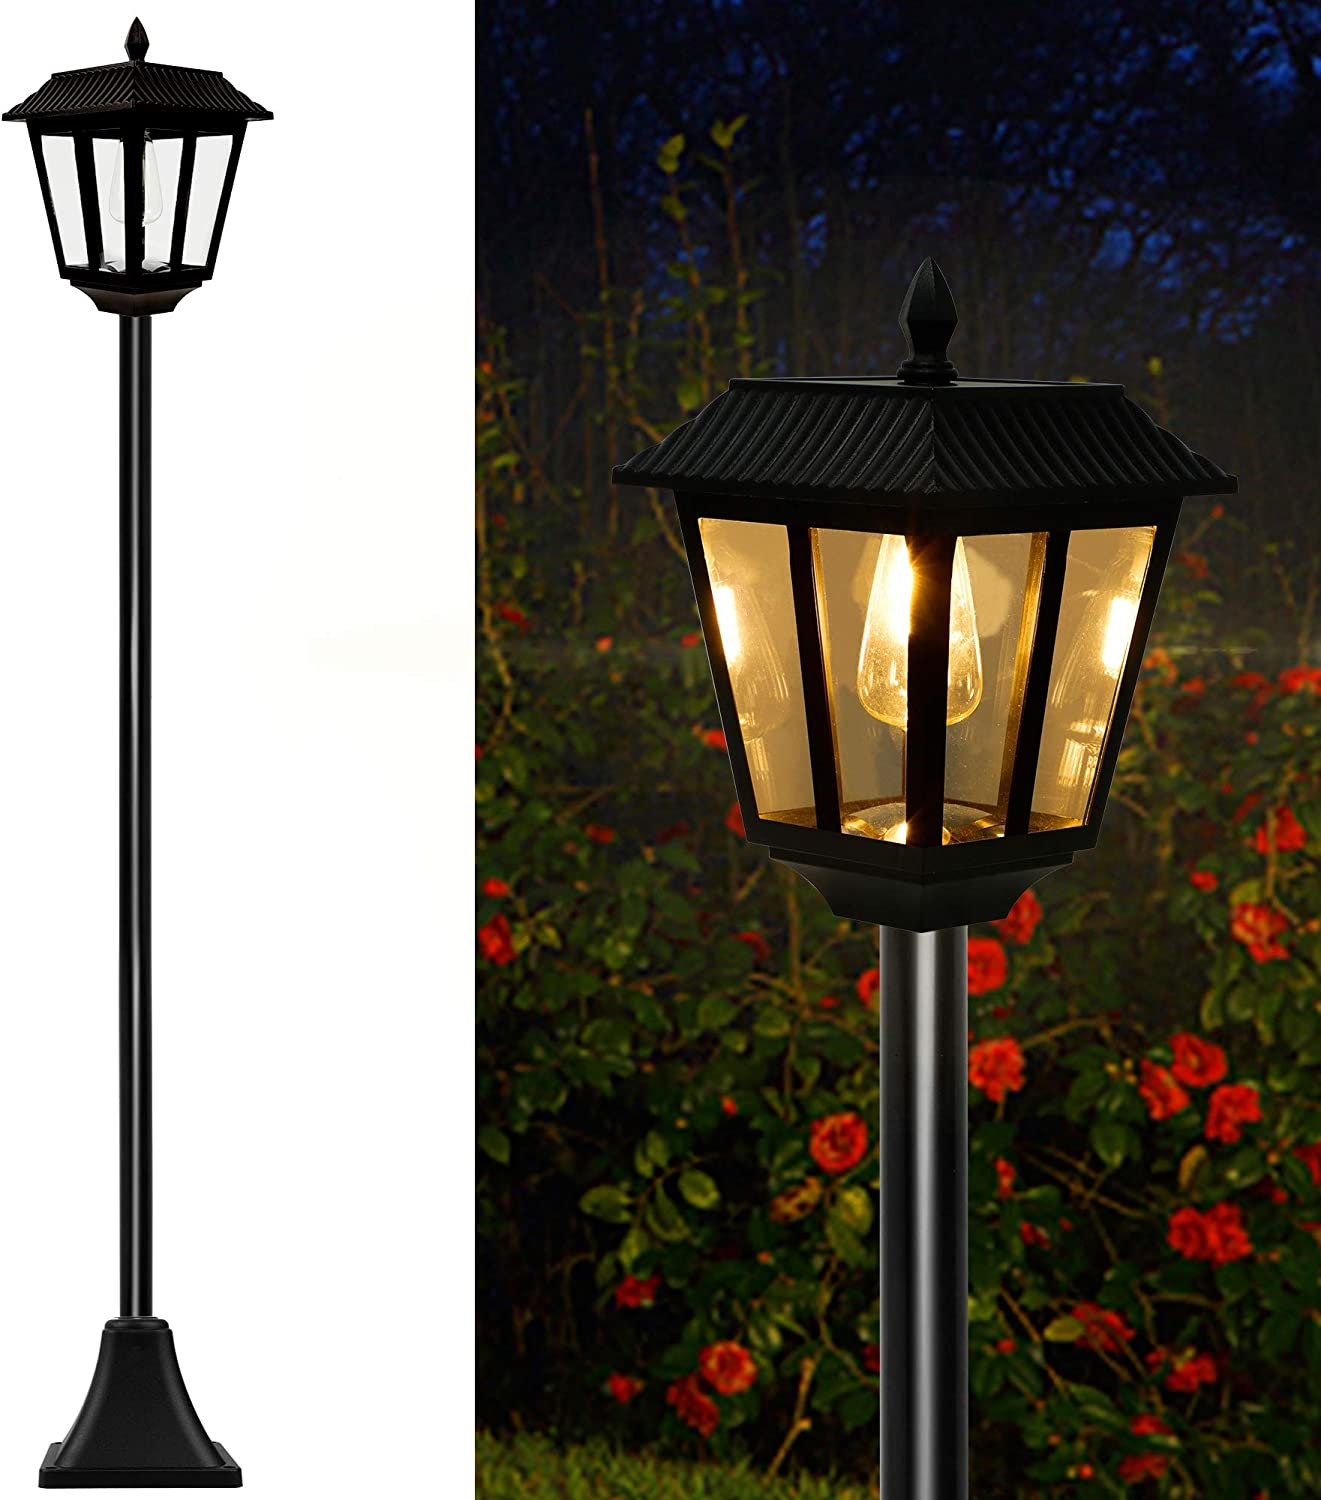 MAGGIFT 67 Inch Solar Lamp Post Lights, 100 Lumen Solar Powered Vintage Street Lights Outdoor, Warm White LED Edison Bulb Solar Post Light for Lawn, Pathway, Driveway, Front/Back Door